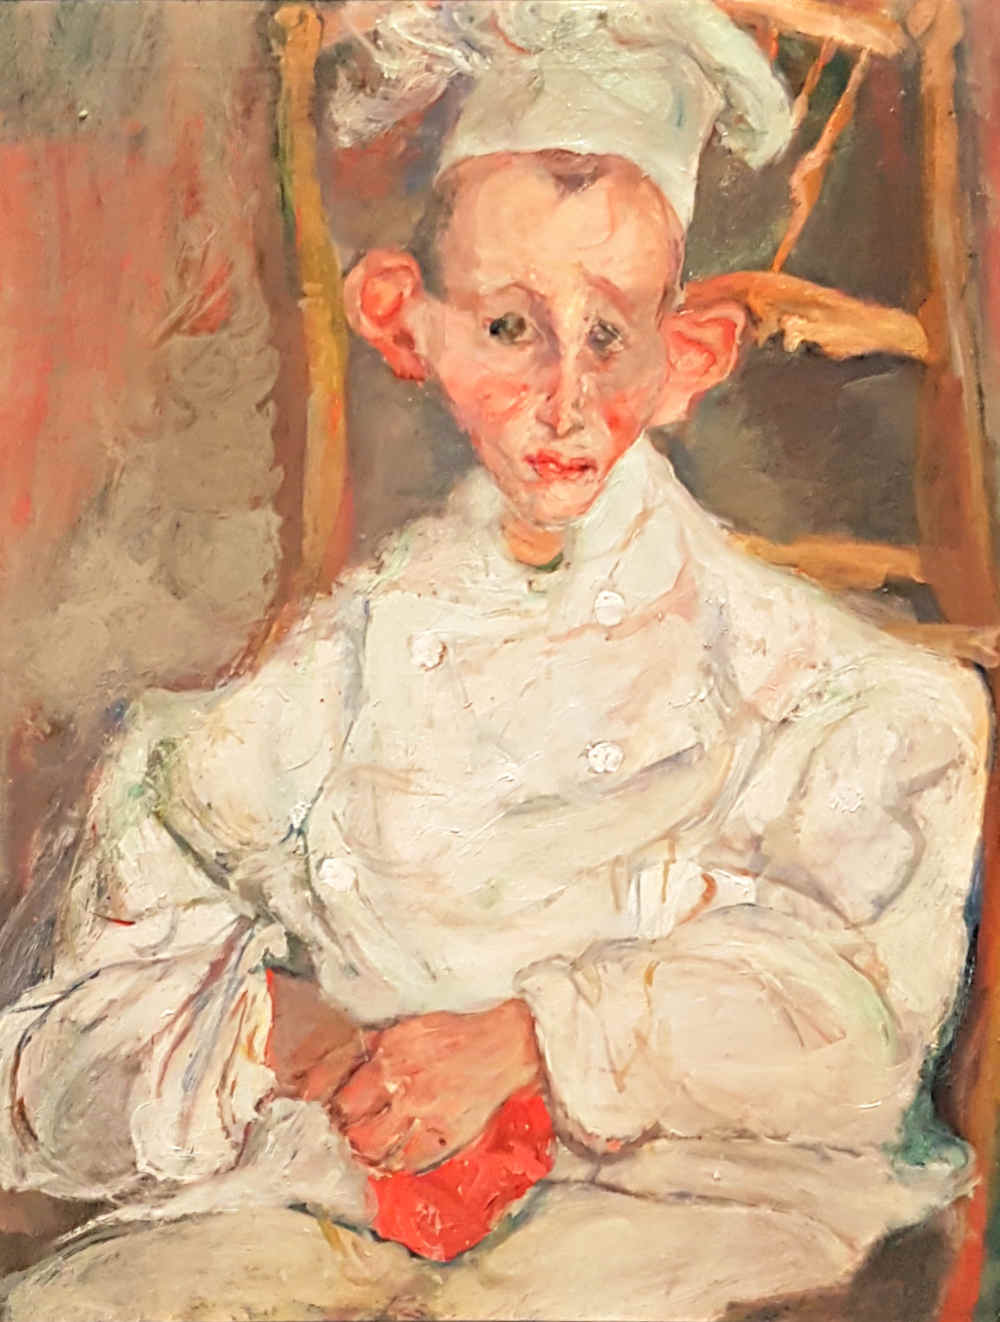 Soutine, Courtauld, London exhibition, Pastry Boy